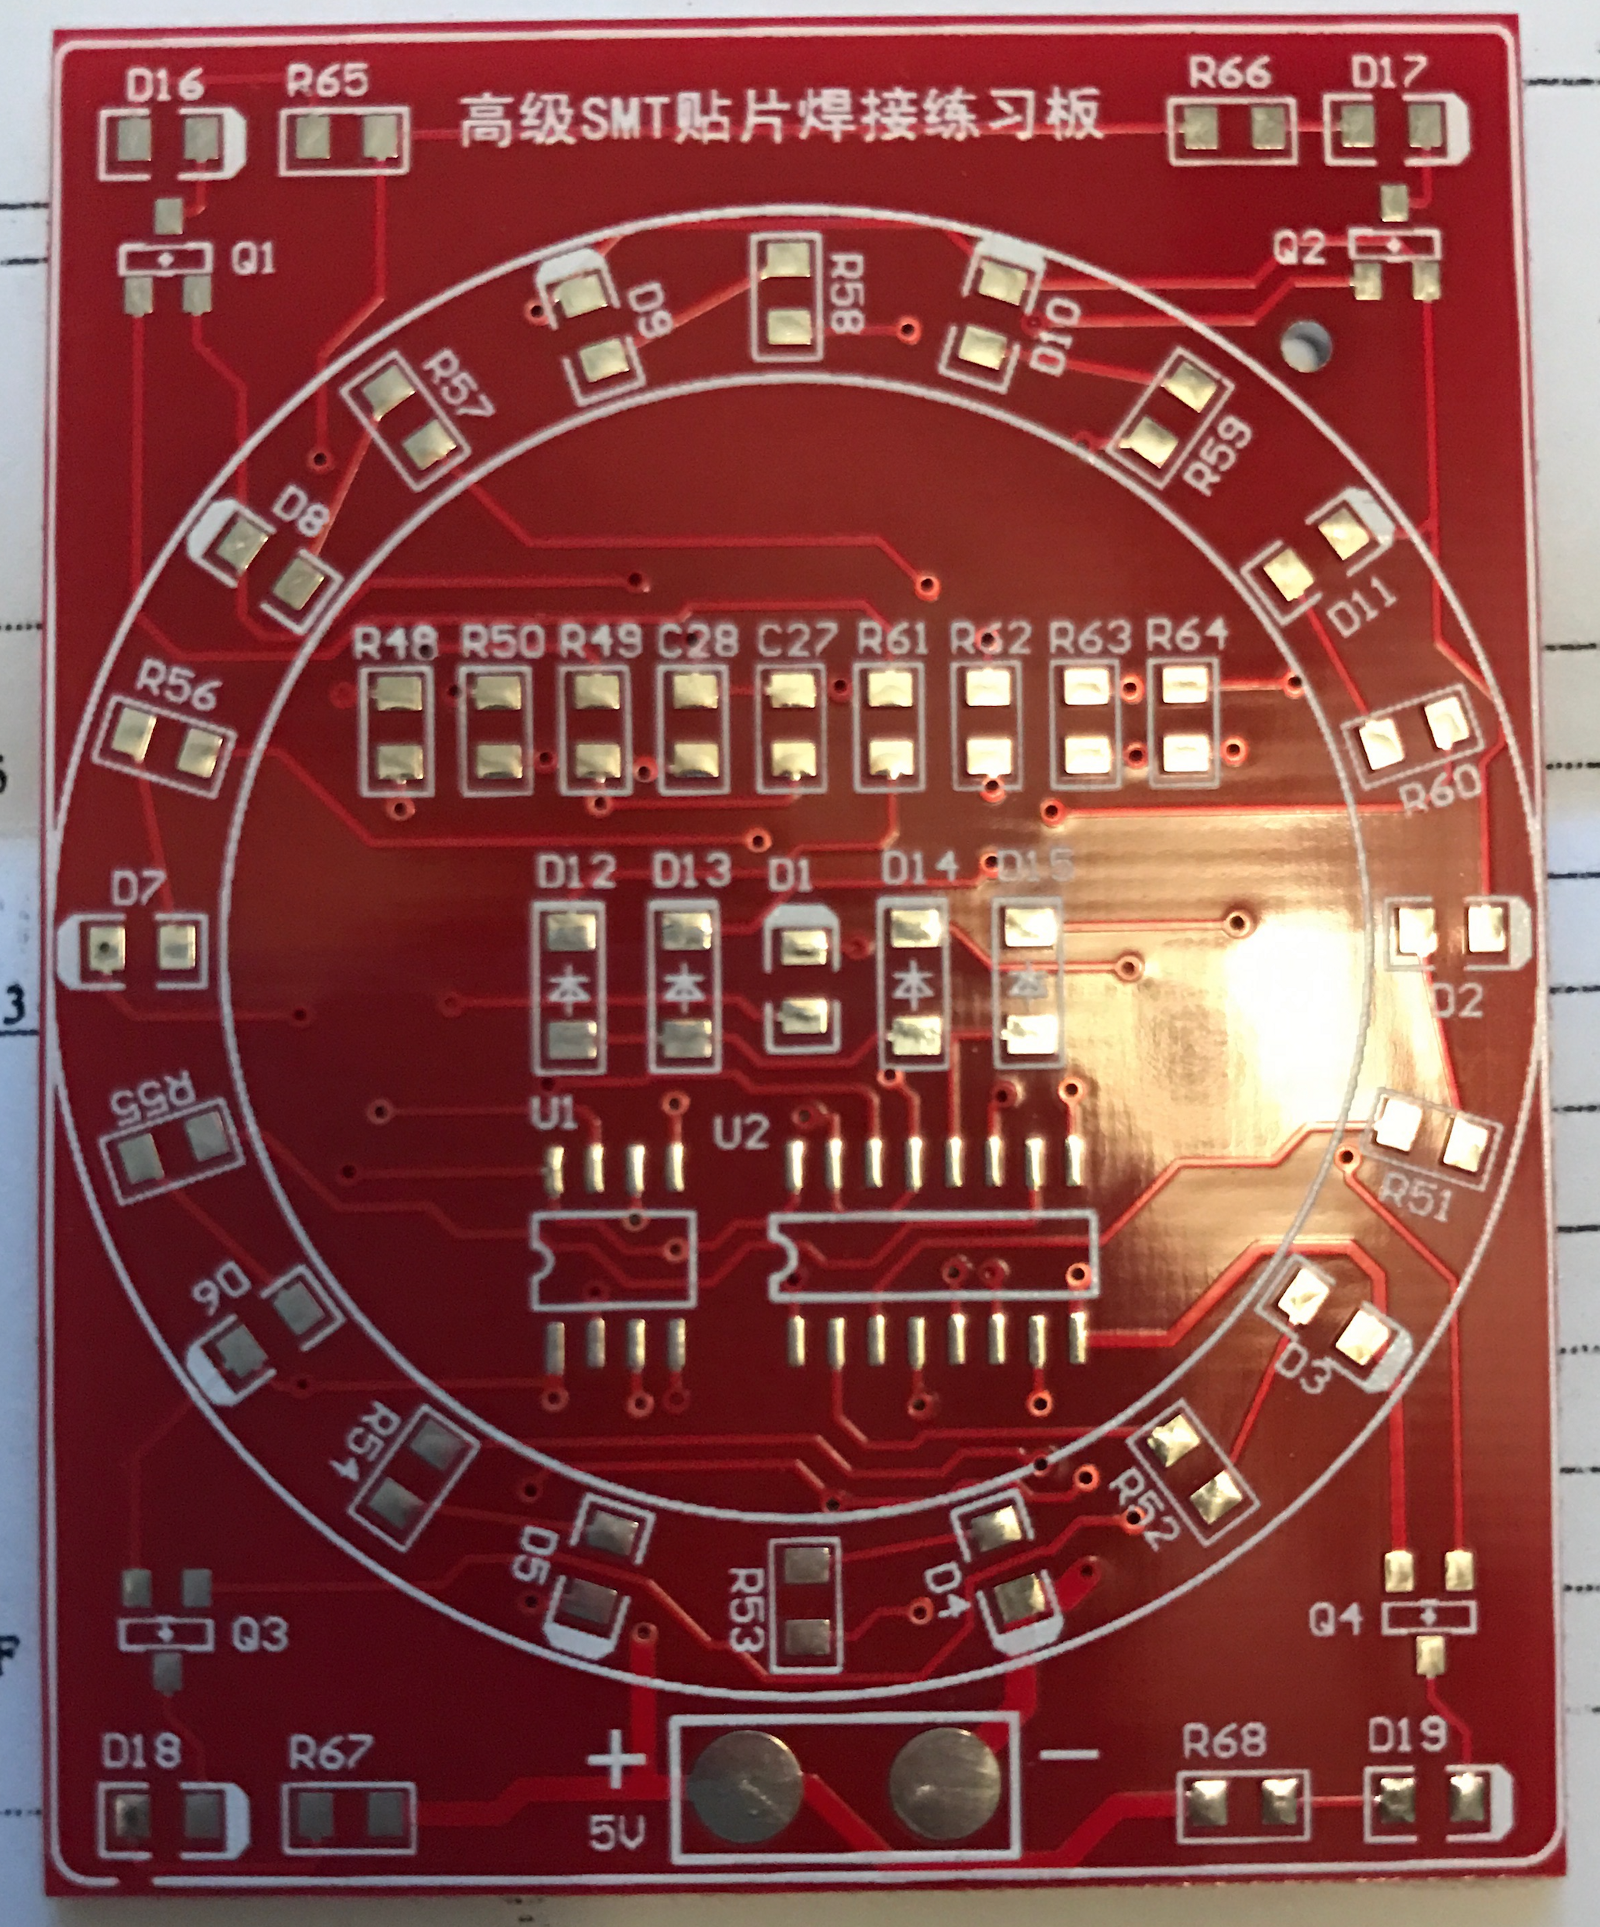 Surface Mount Electronics For Hobbyists Easier Than You Think After Making The Controller On A Perforated Board Place Everything In Some Progress Soldering